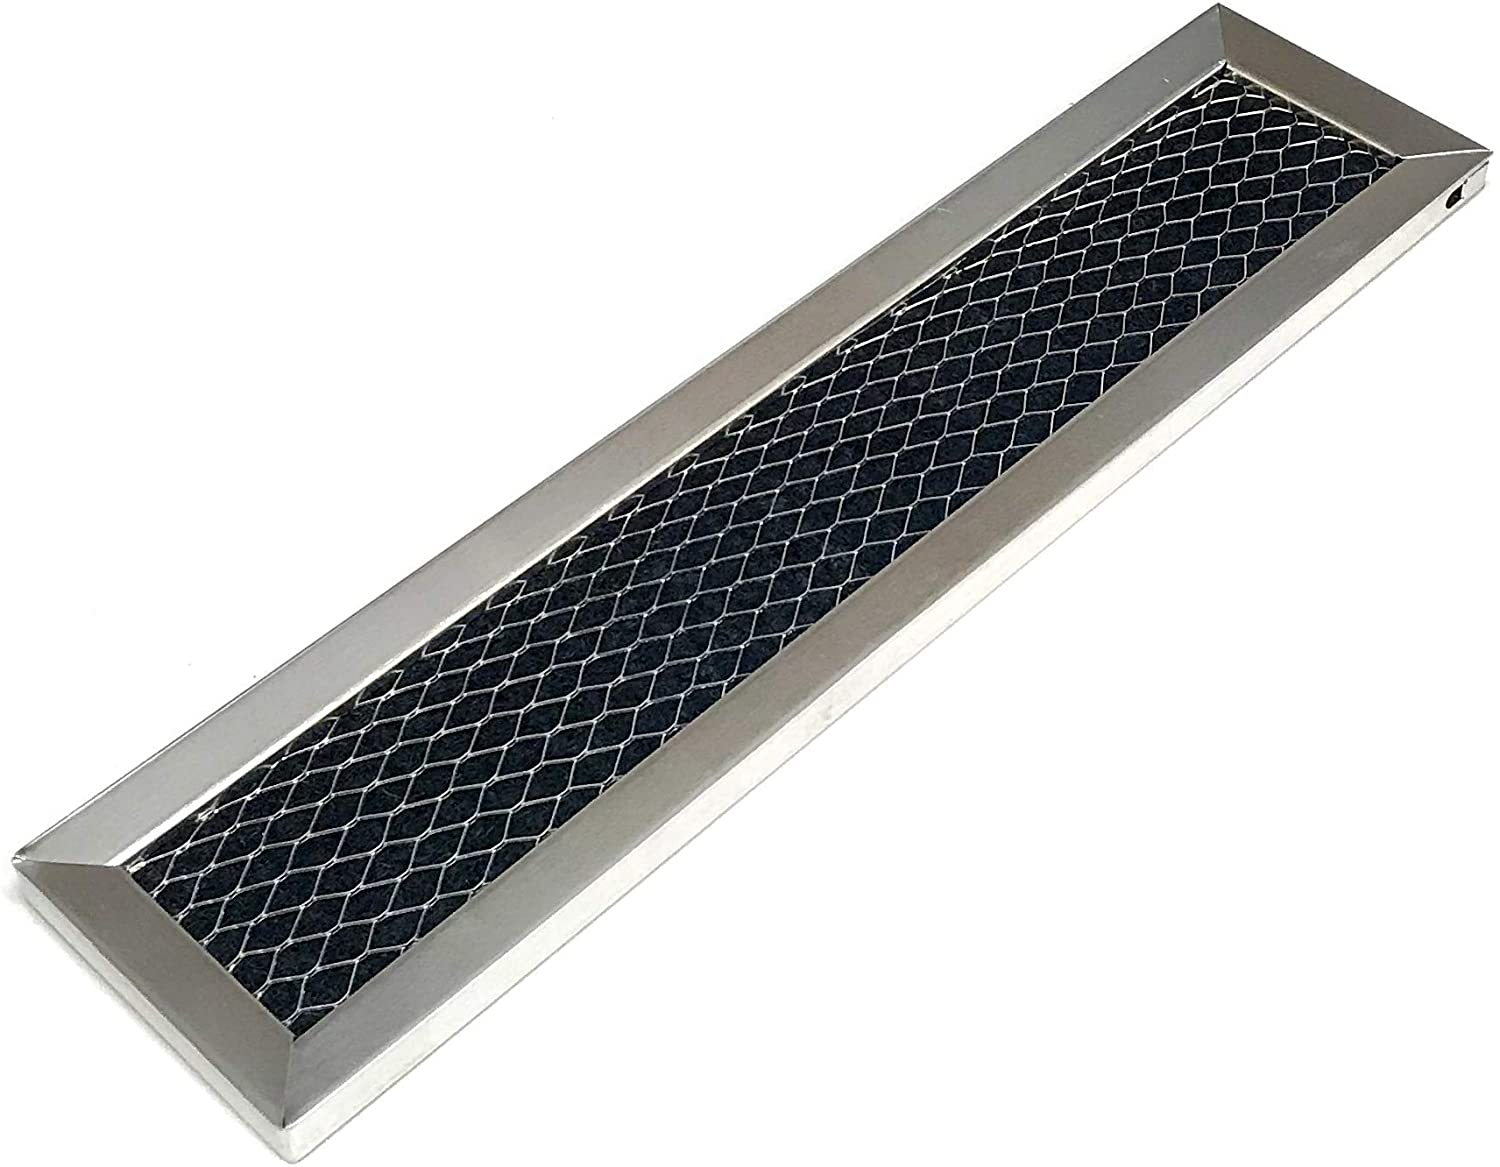 OEM GE Microwave CHARCOAL Filter Shipped With JVM3160DF4BB, JVM3160DF4CC, JVM3160DF4WW, JVM3160EF1ES, JVM3160EF2ES